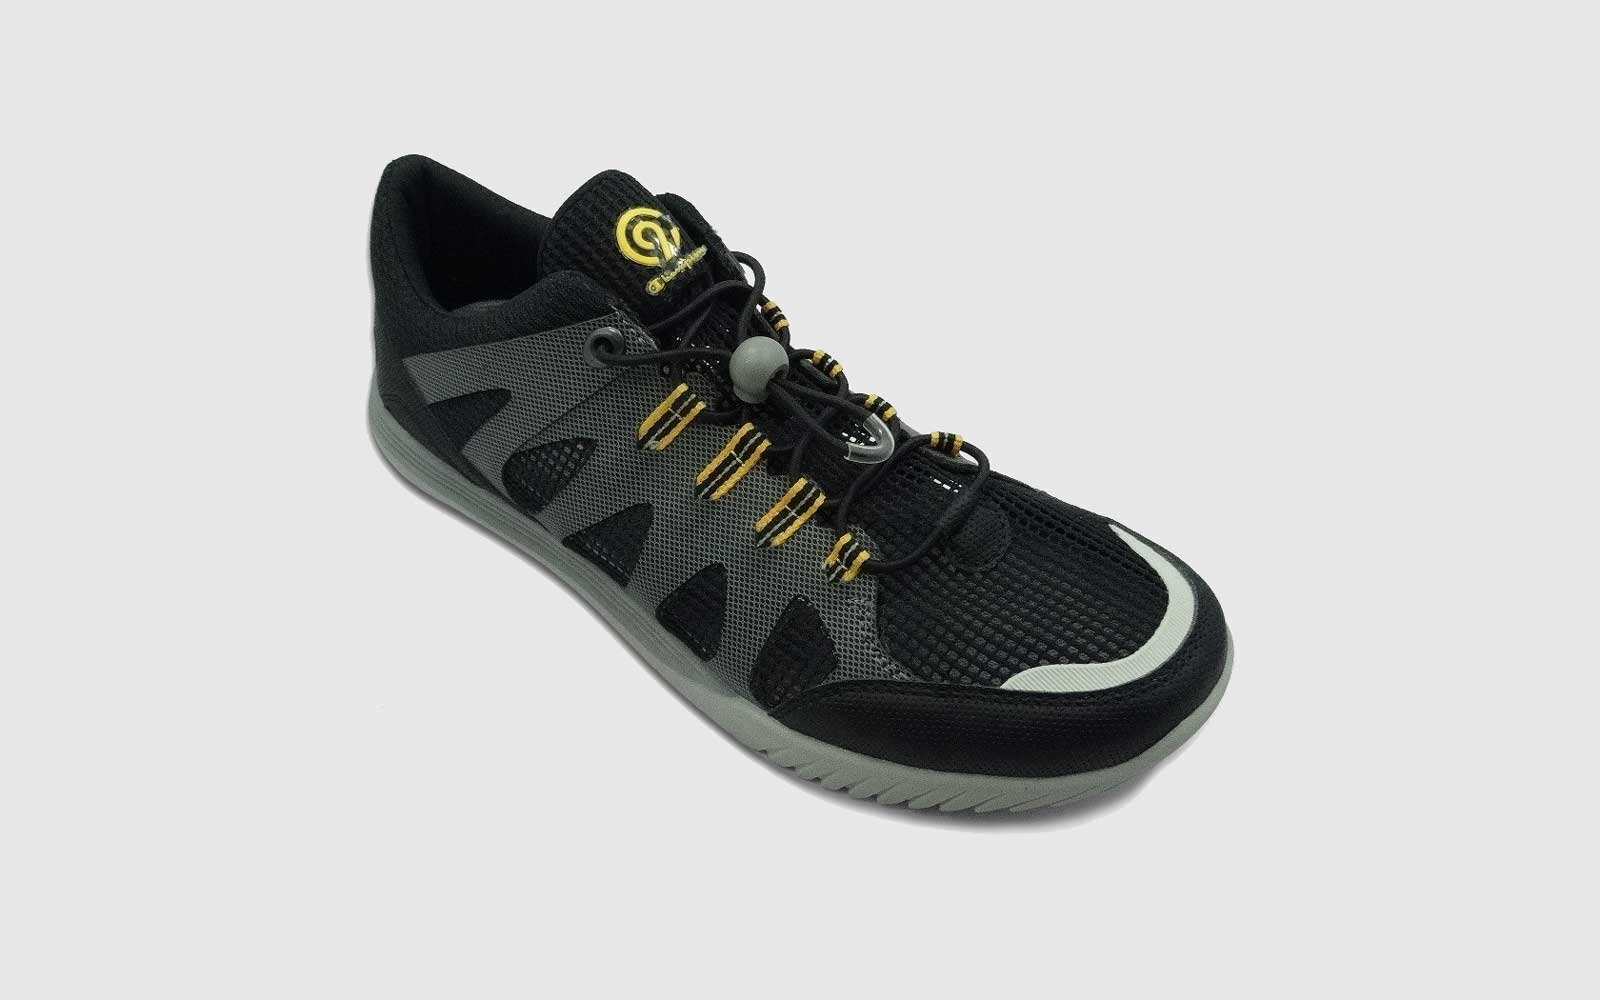 cb95701f4a2 The Best Men s Water Shoes for 2019